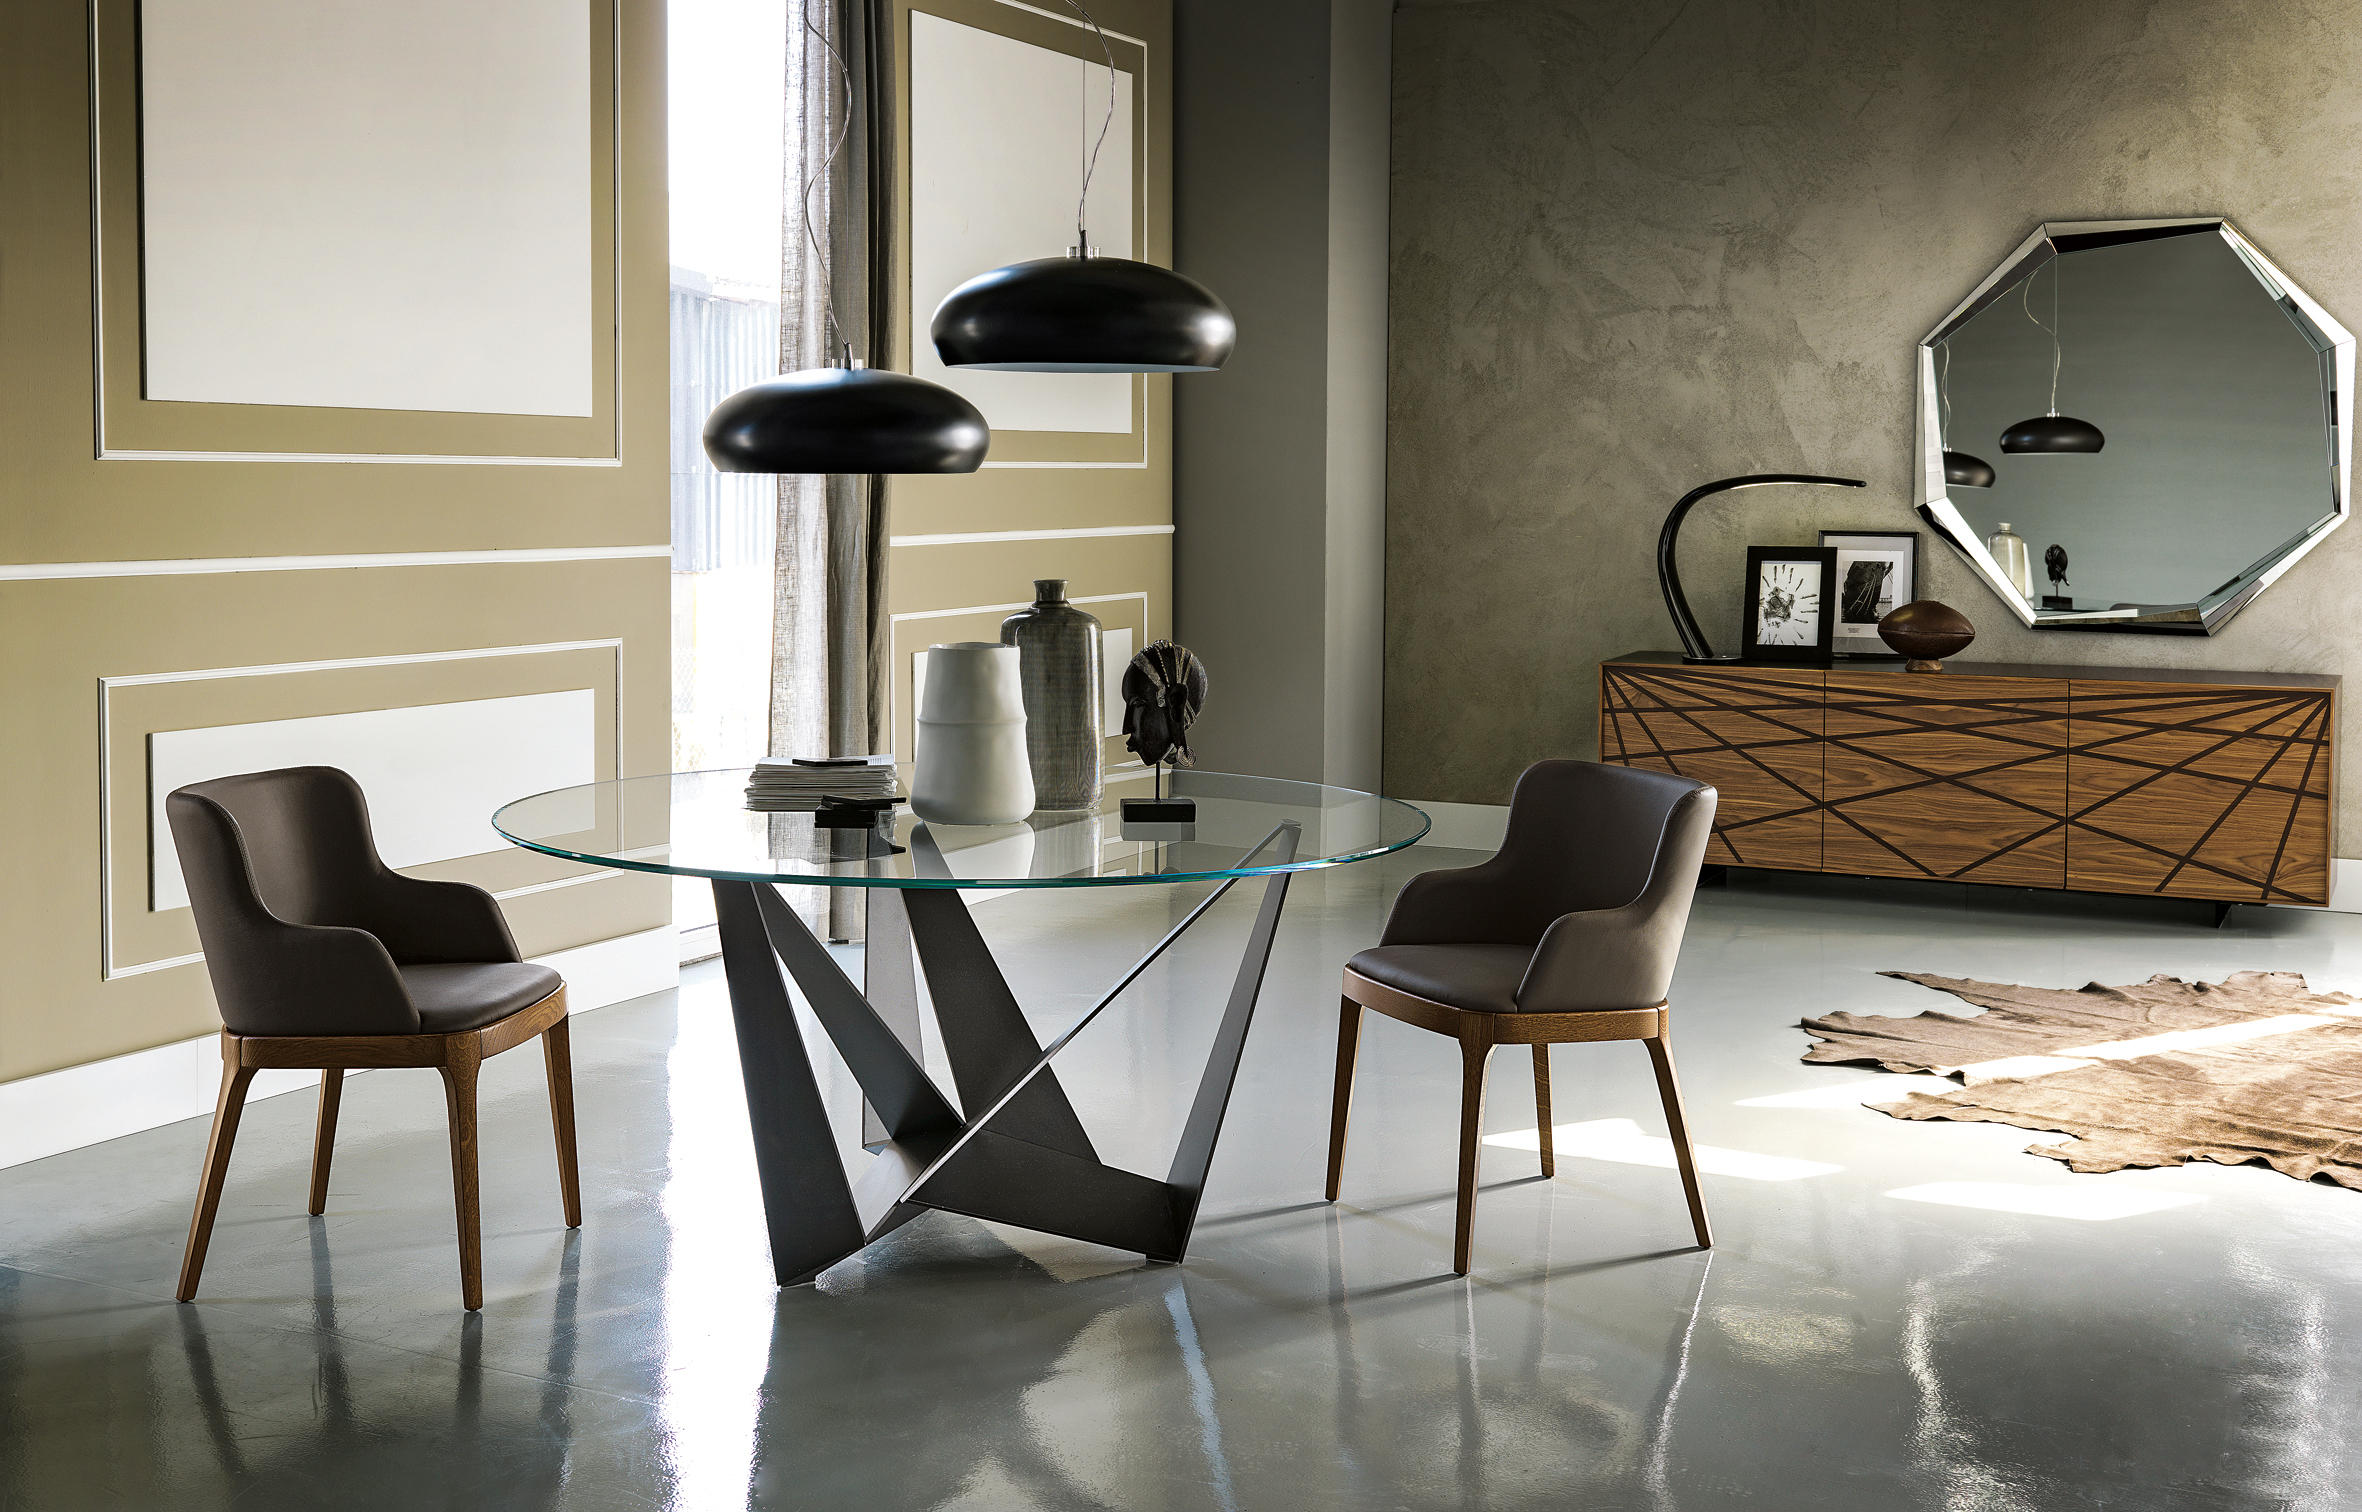 skorpio round dining tables from cattelan italia. Black Bedroom Furniture Sets. Home Design Ideas